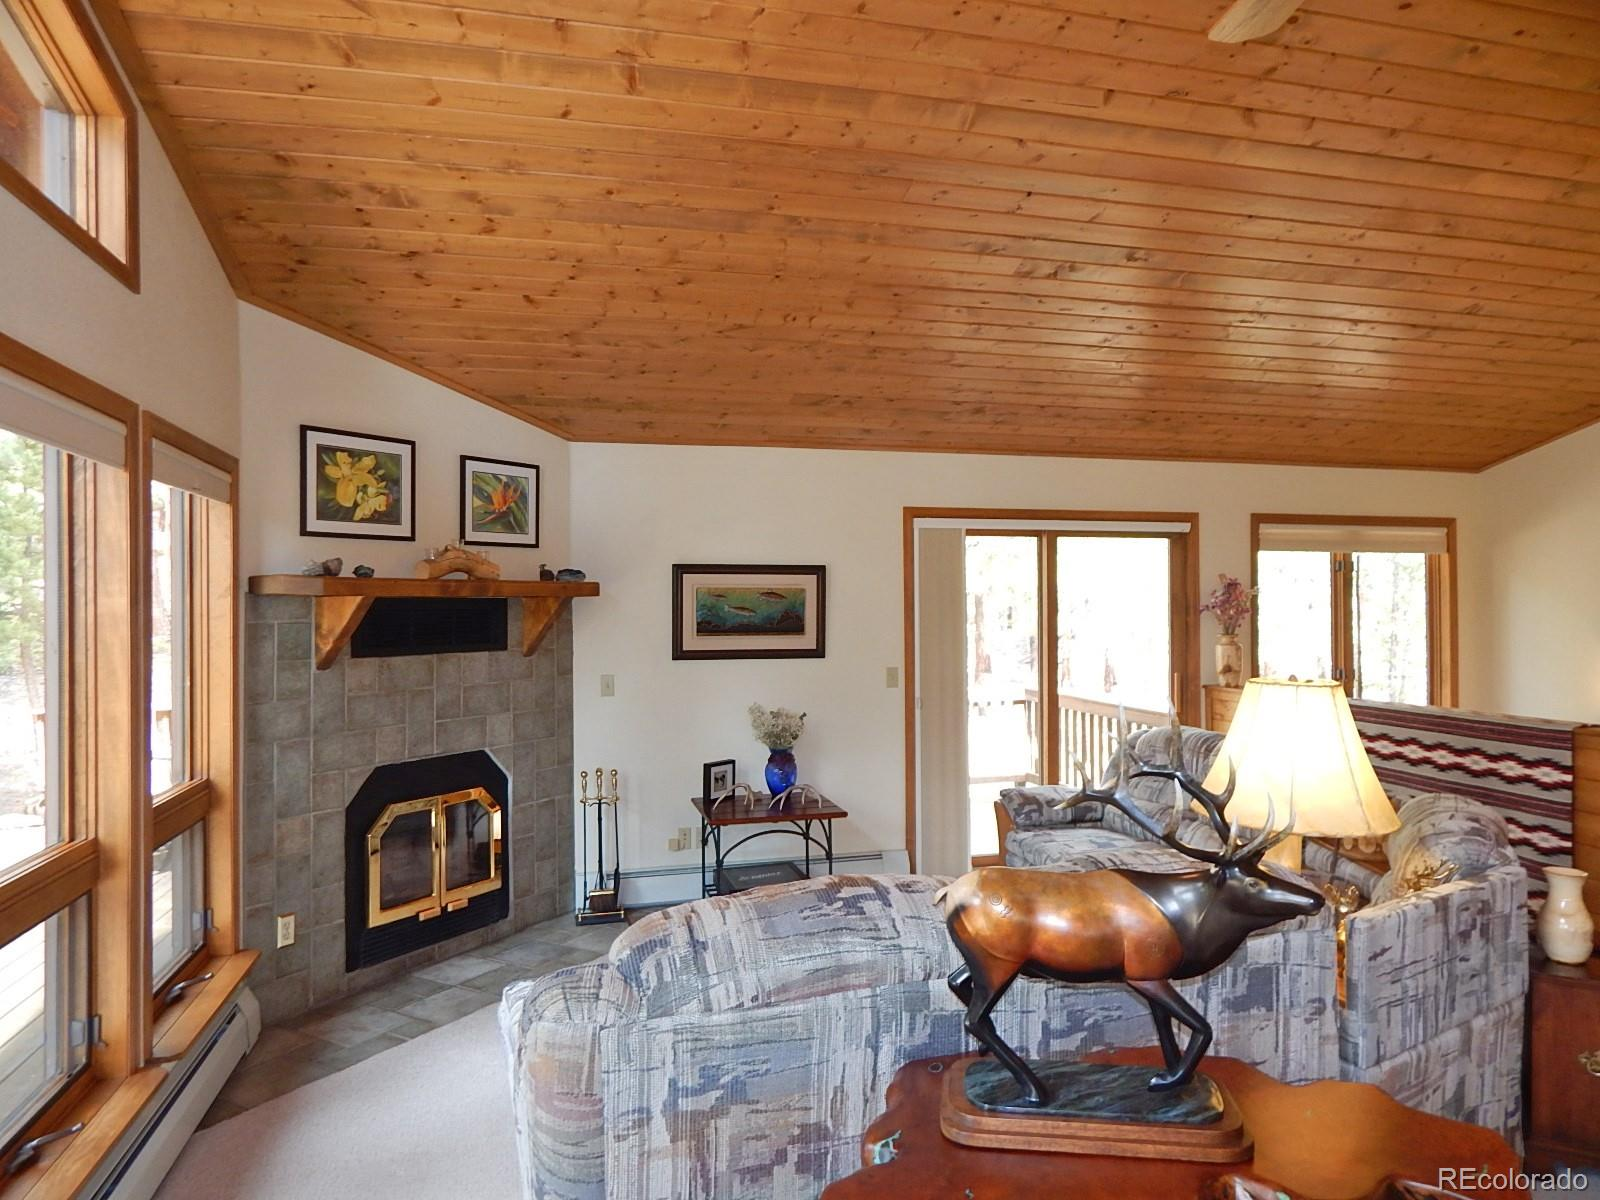 MLS# 7606361 - 4 - 30378 National Forest Drive, Buena Vista, CO 81211